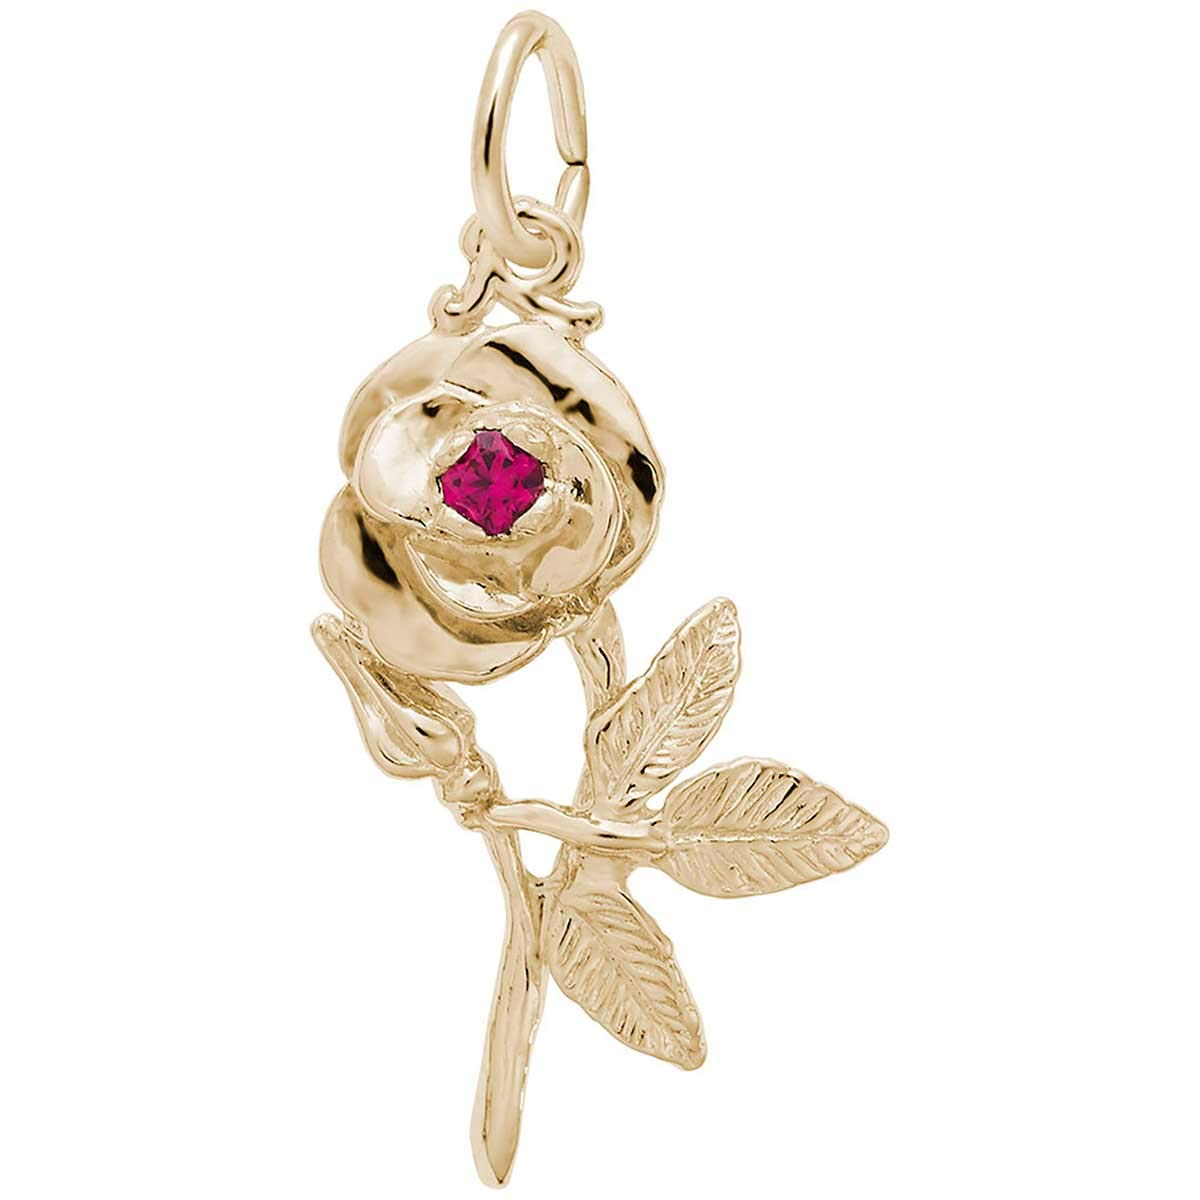 Rembrandt Charms Rose Charm, 14K Yellow Gold